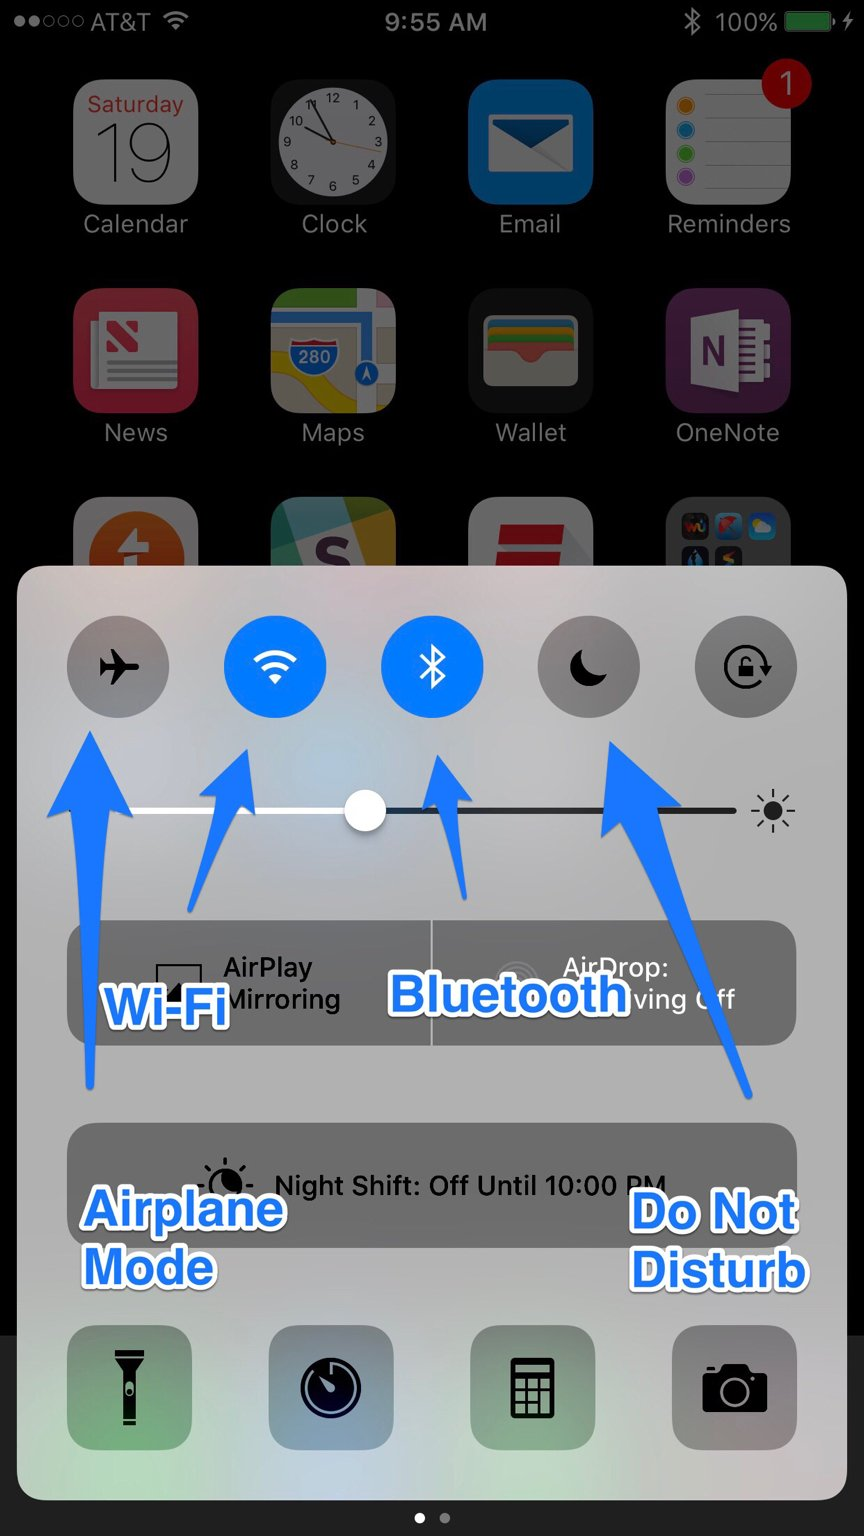 how to connect my ipad to the internet